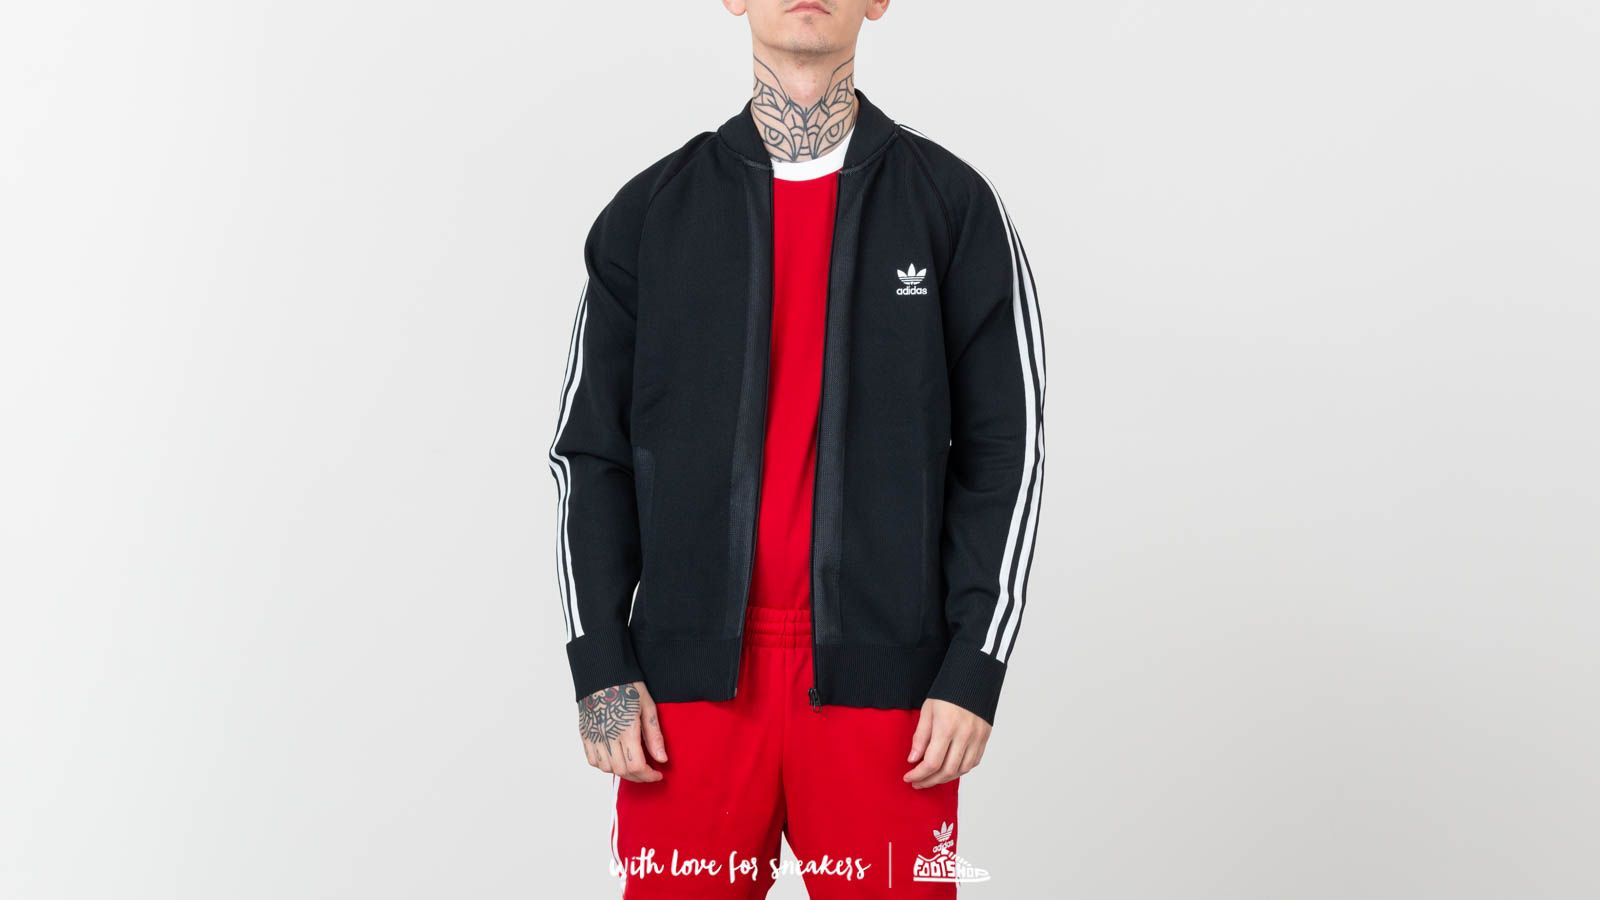 info for 8a6c0 eec4d adidas Black Friday Knitted Track Top Black la un preț excelent 458 Lei  cumpără la Footshop